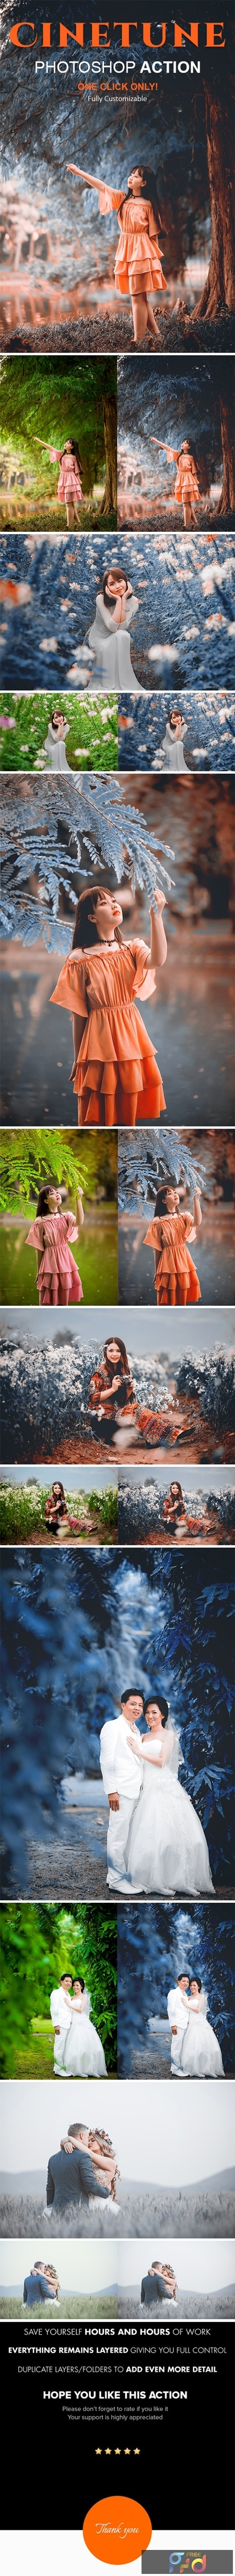 Cinetune cinematic color grading Effects Photoshop Action 24460869 1